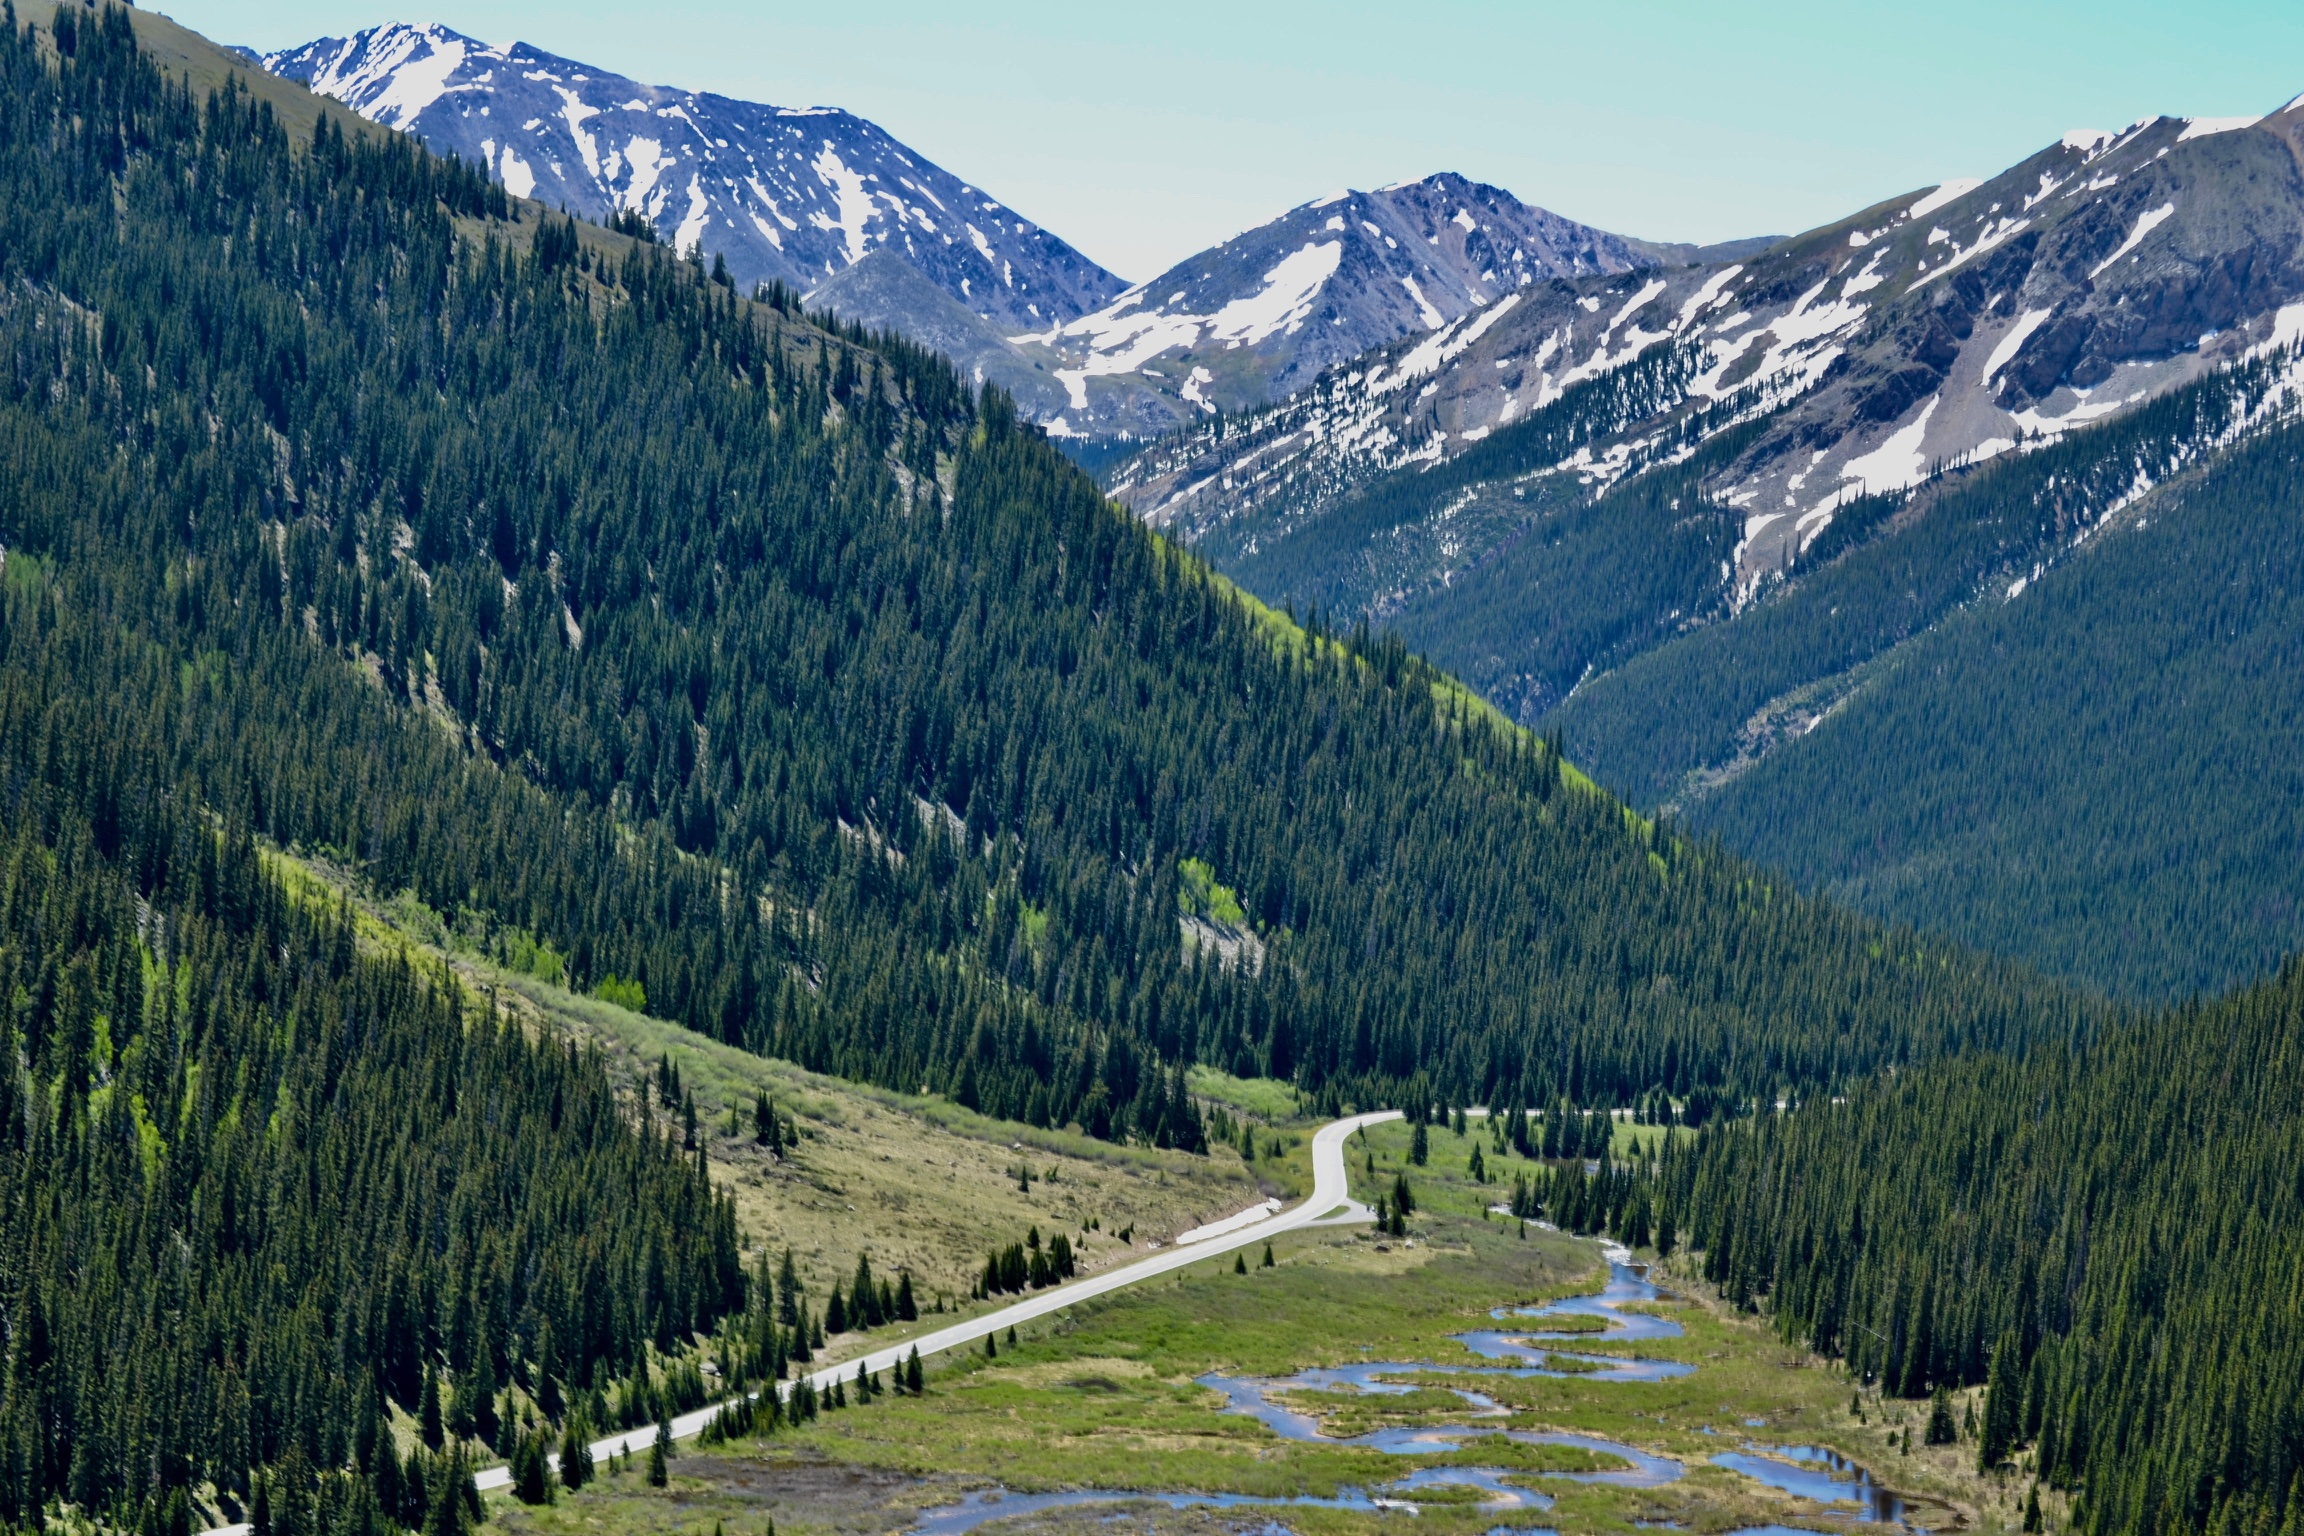 Driving over Independence Pass into Aspen, Colorado.